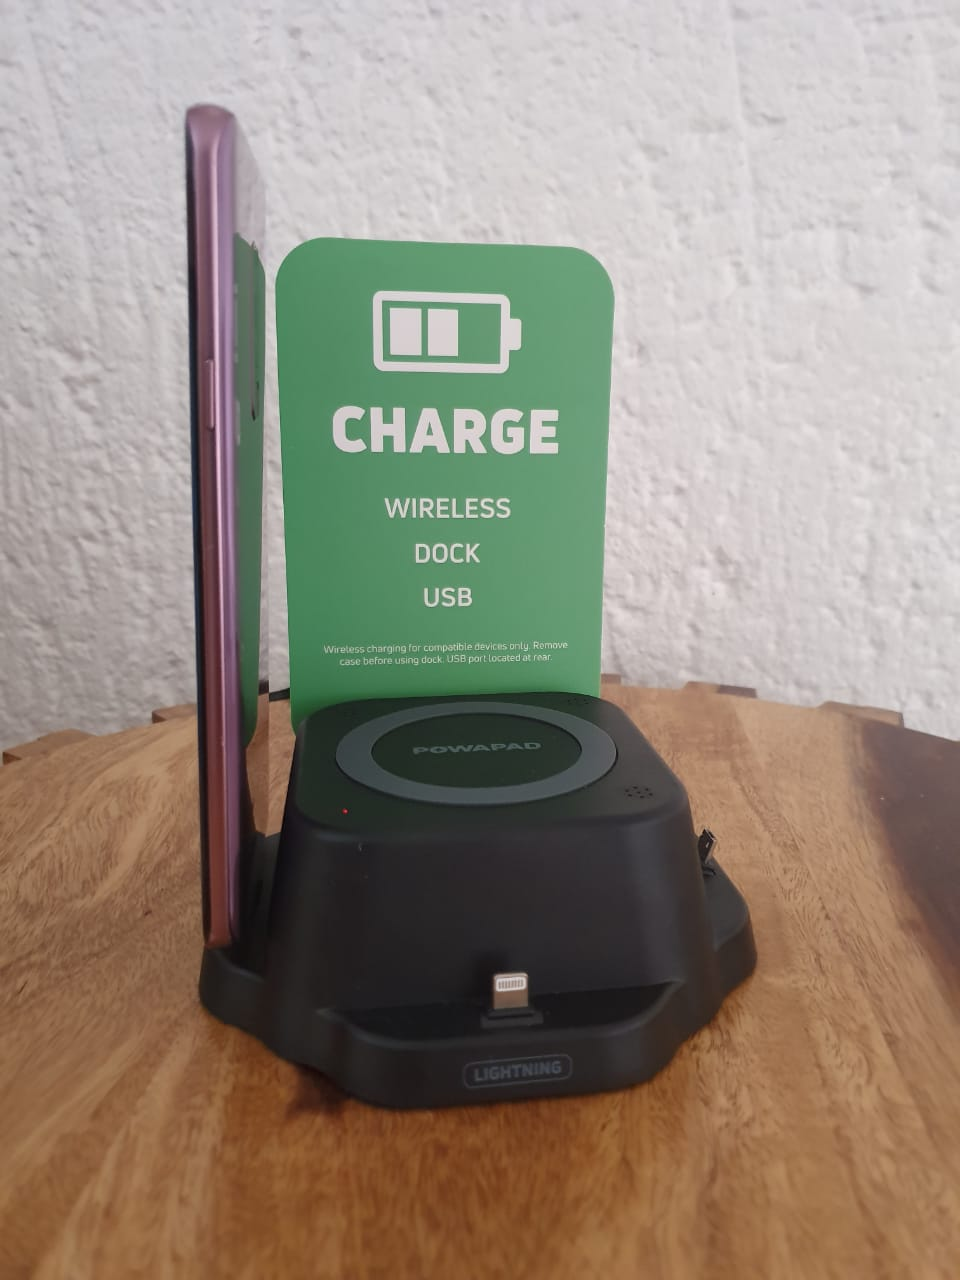 POWAPAD all in one mobile charger.